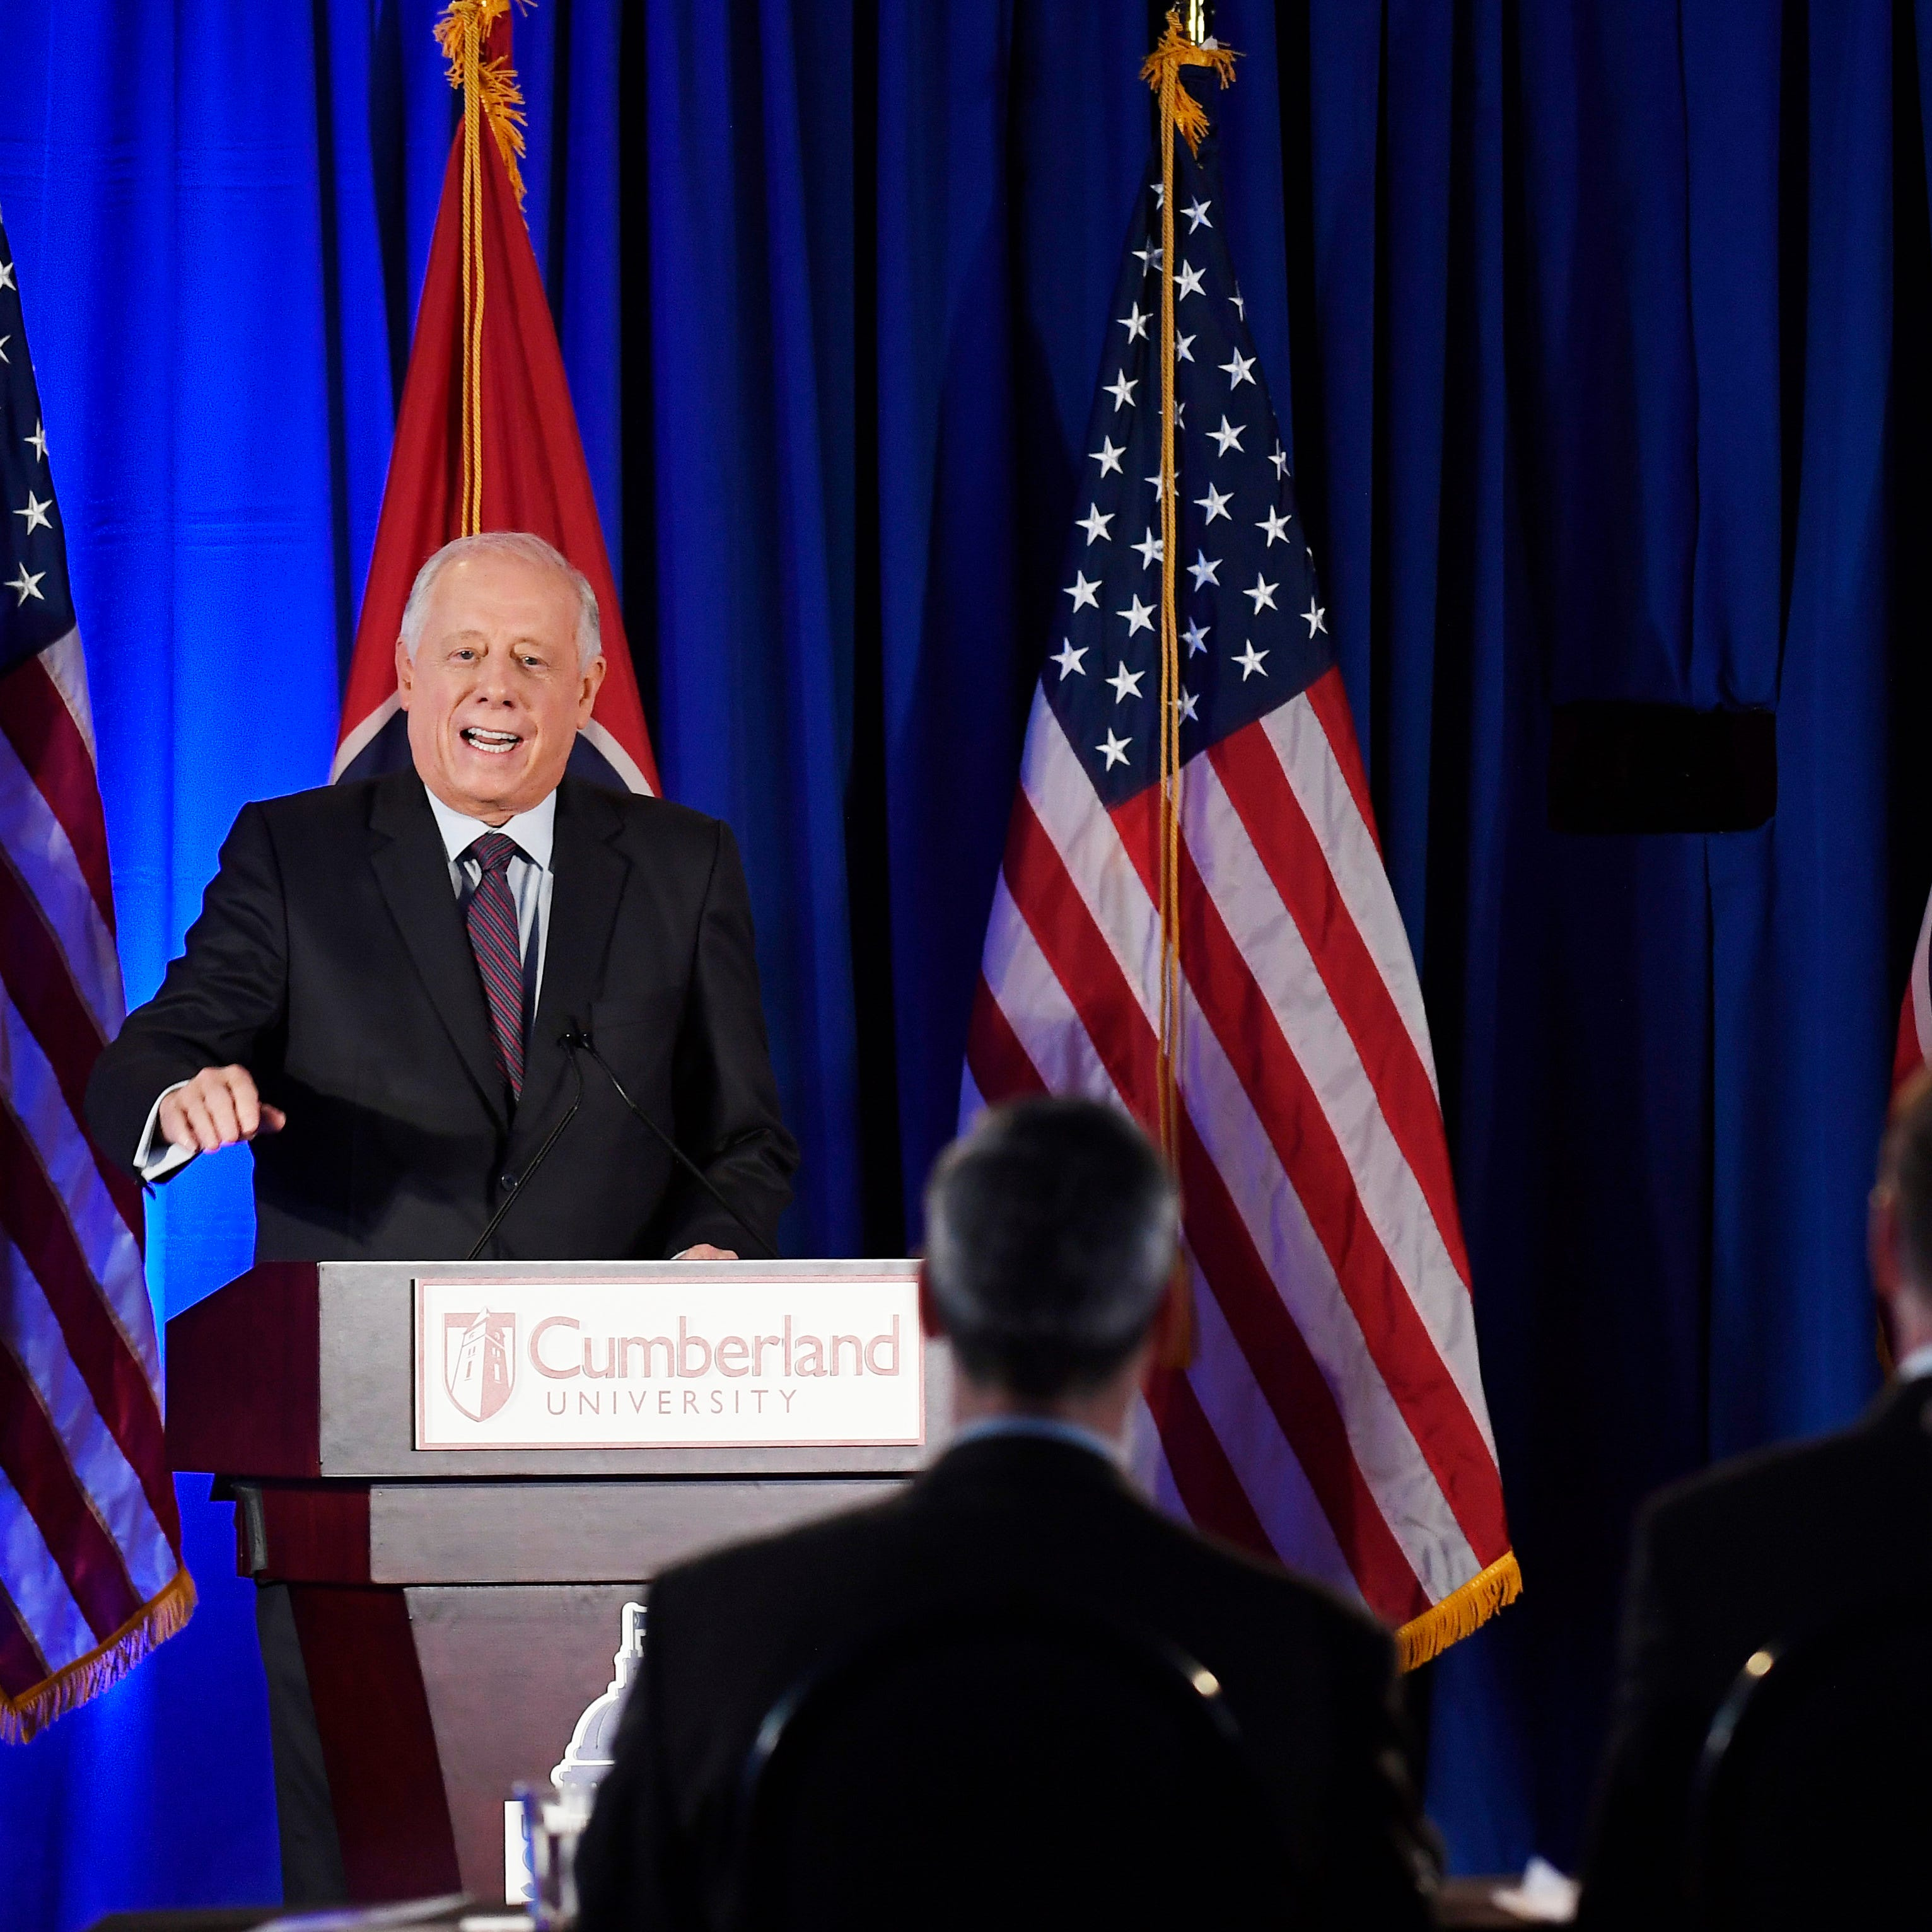 Senate race: Blackburn, Bredesen at odds over history of Tennessee income tax fight